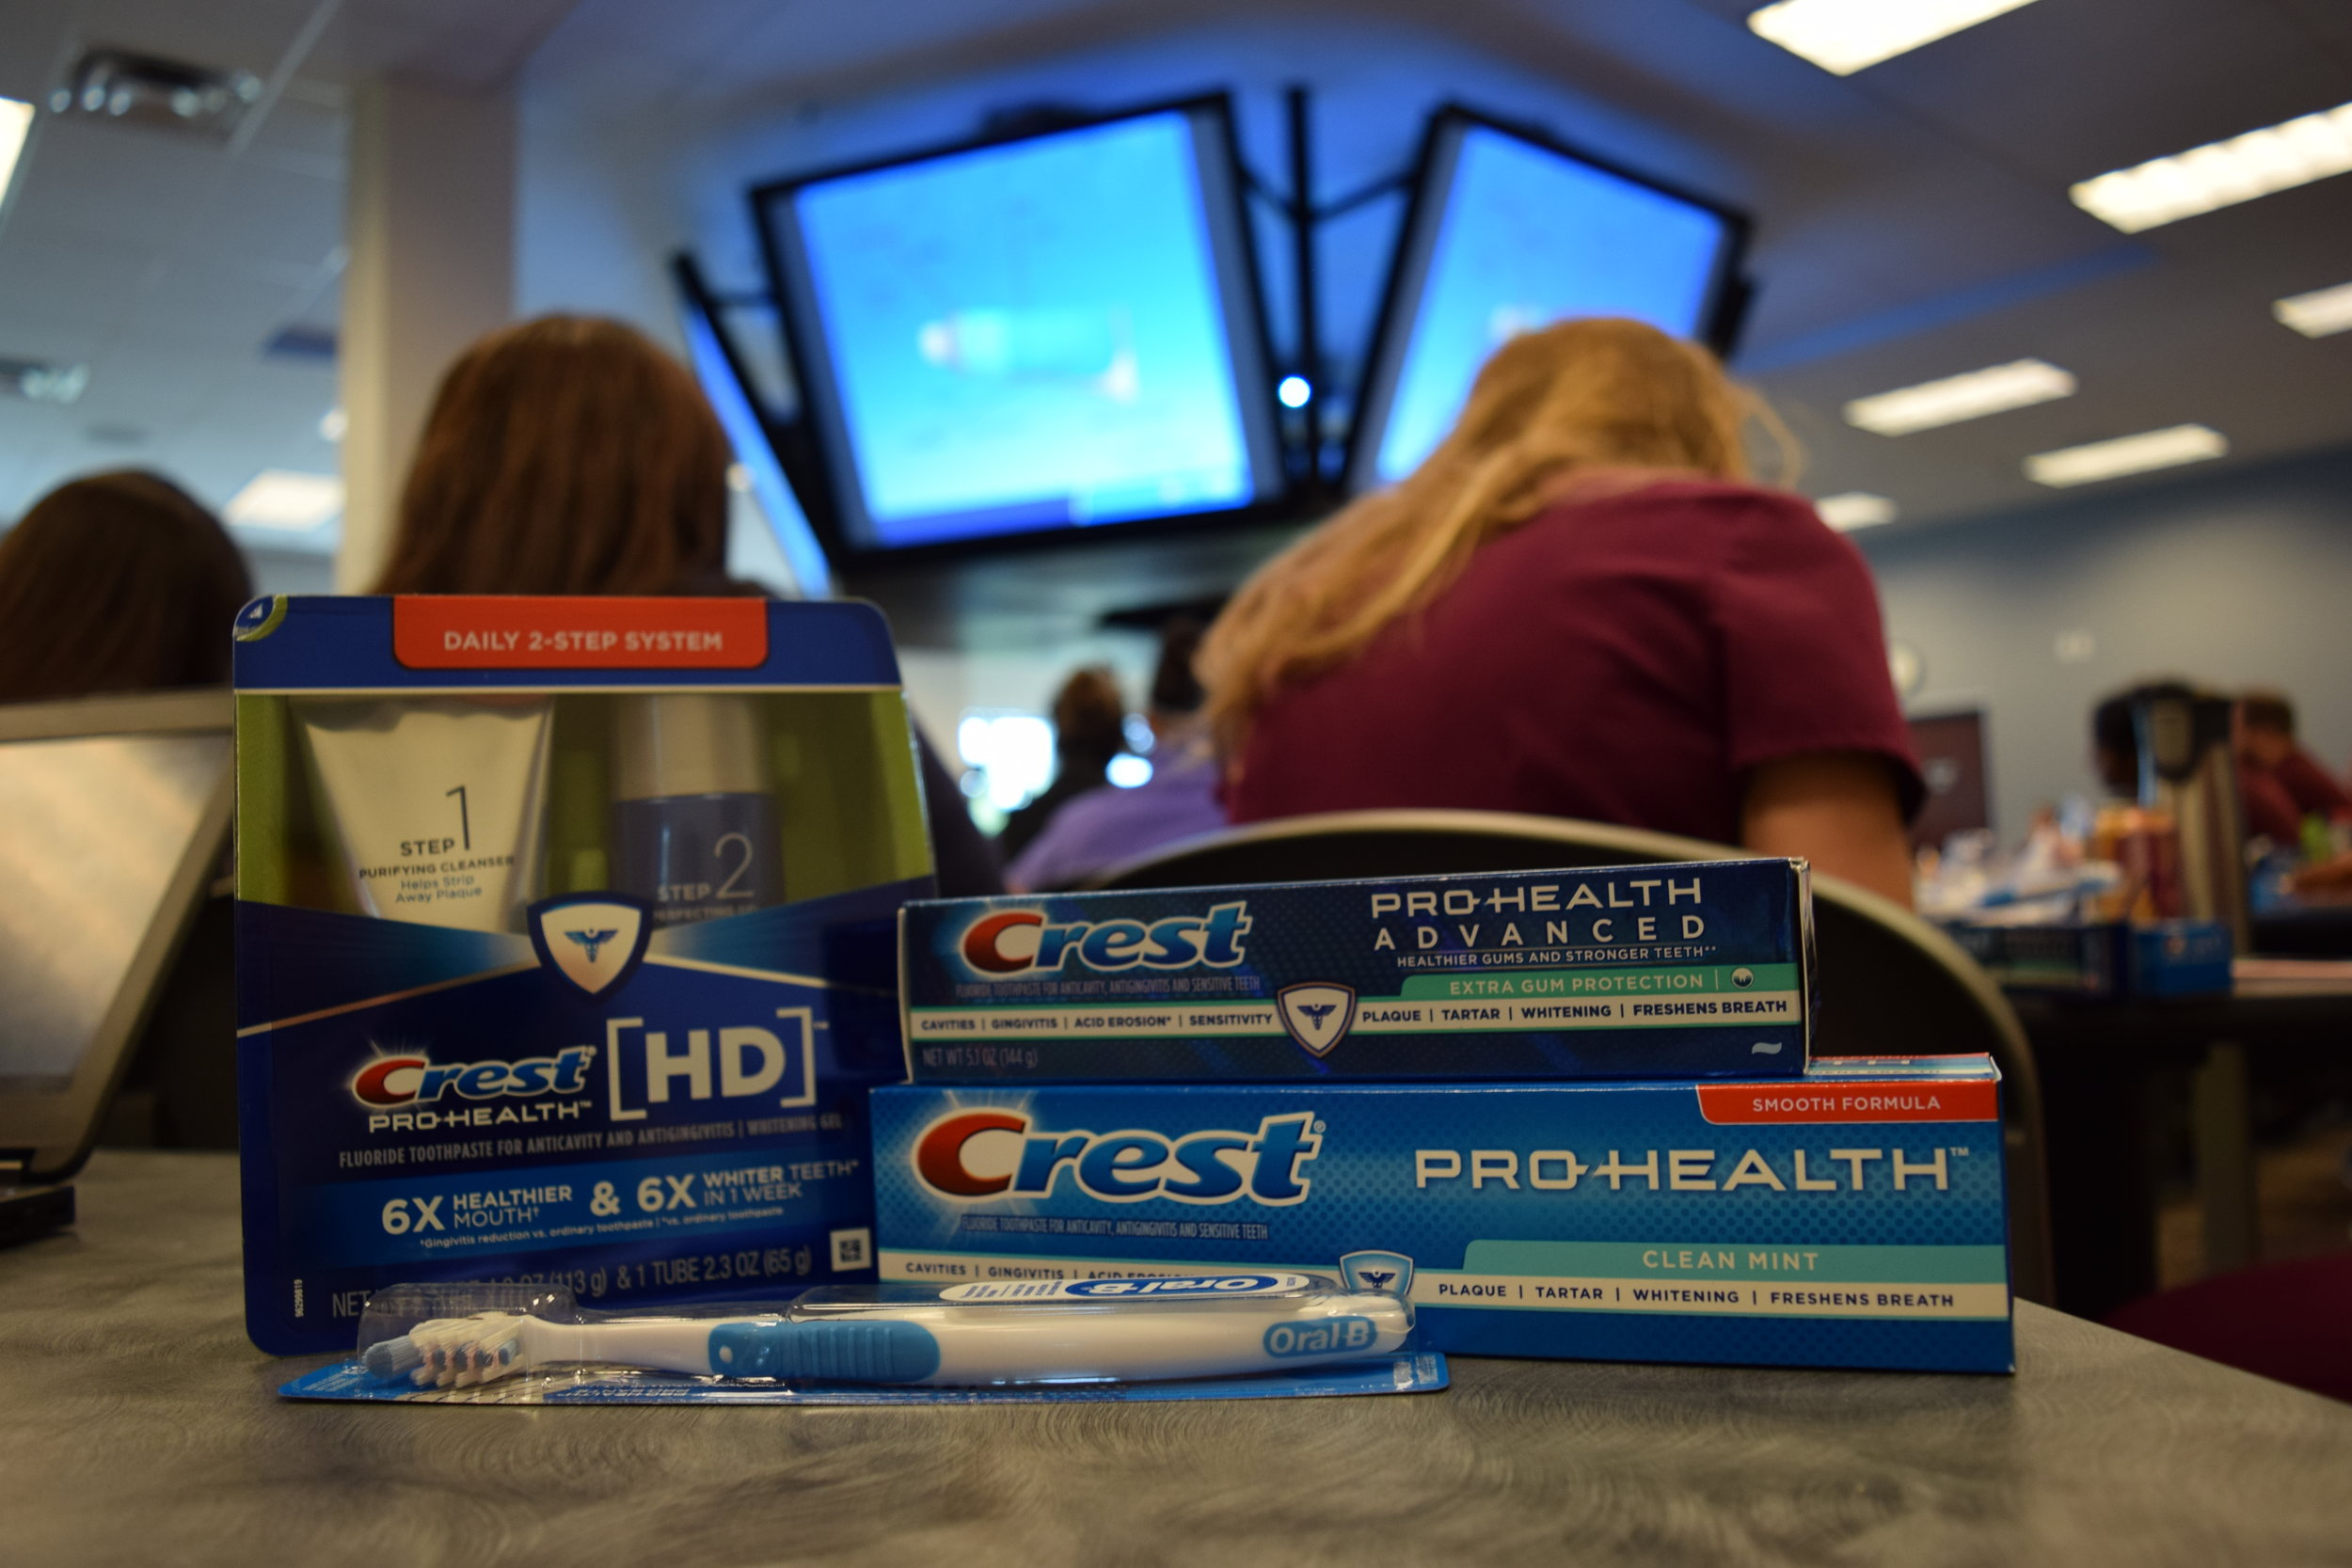 Crest/Oral B Lunch & Learn